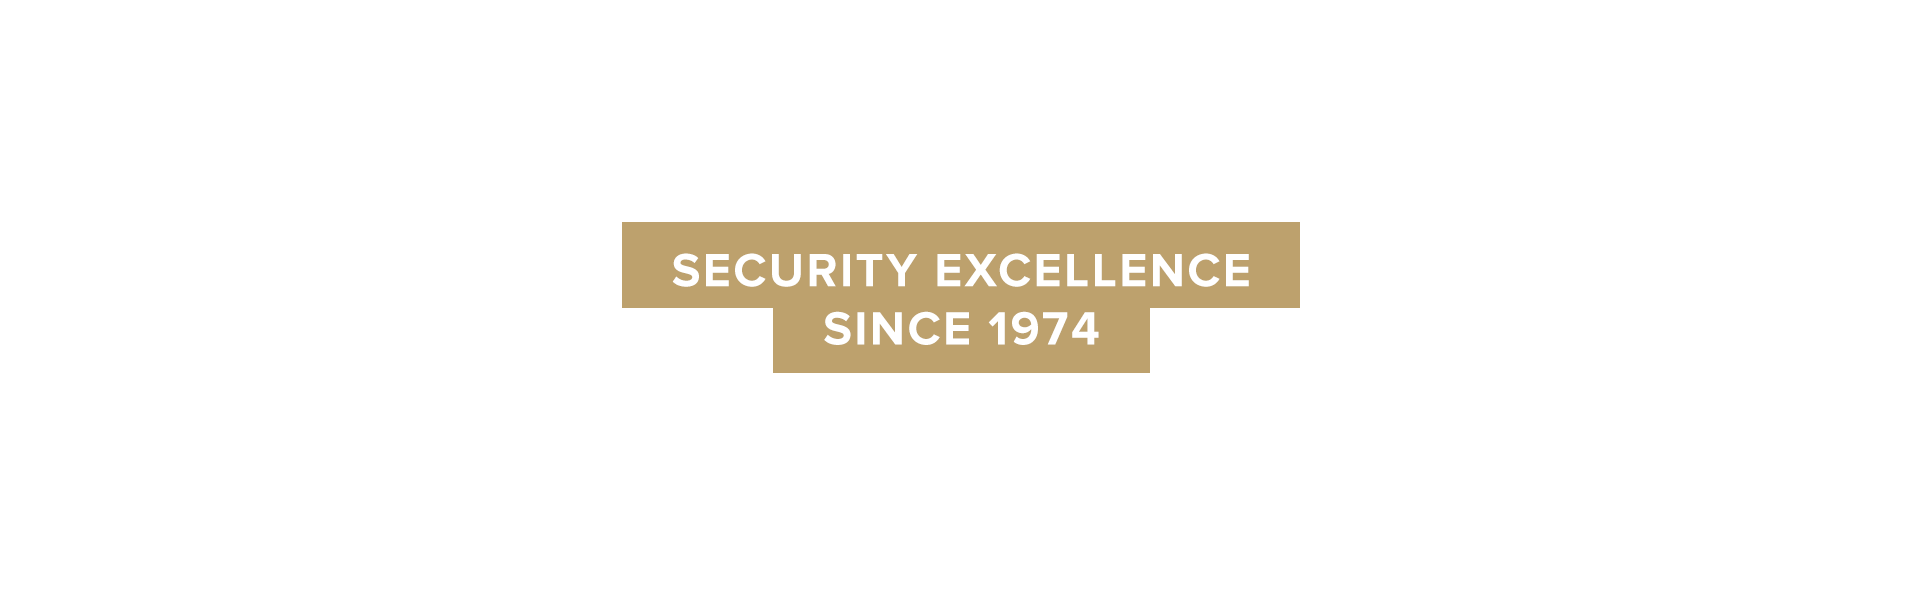 security excellence